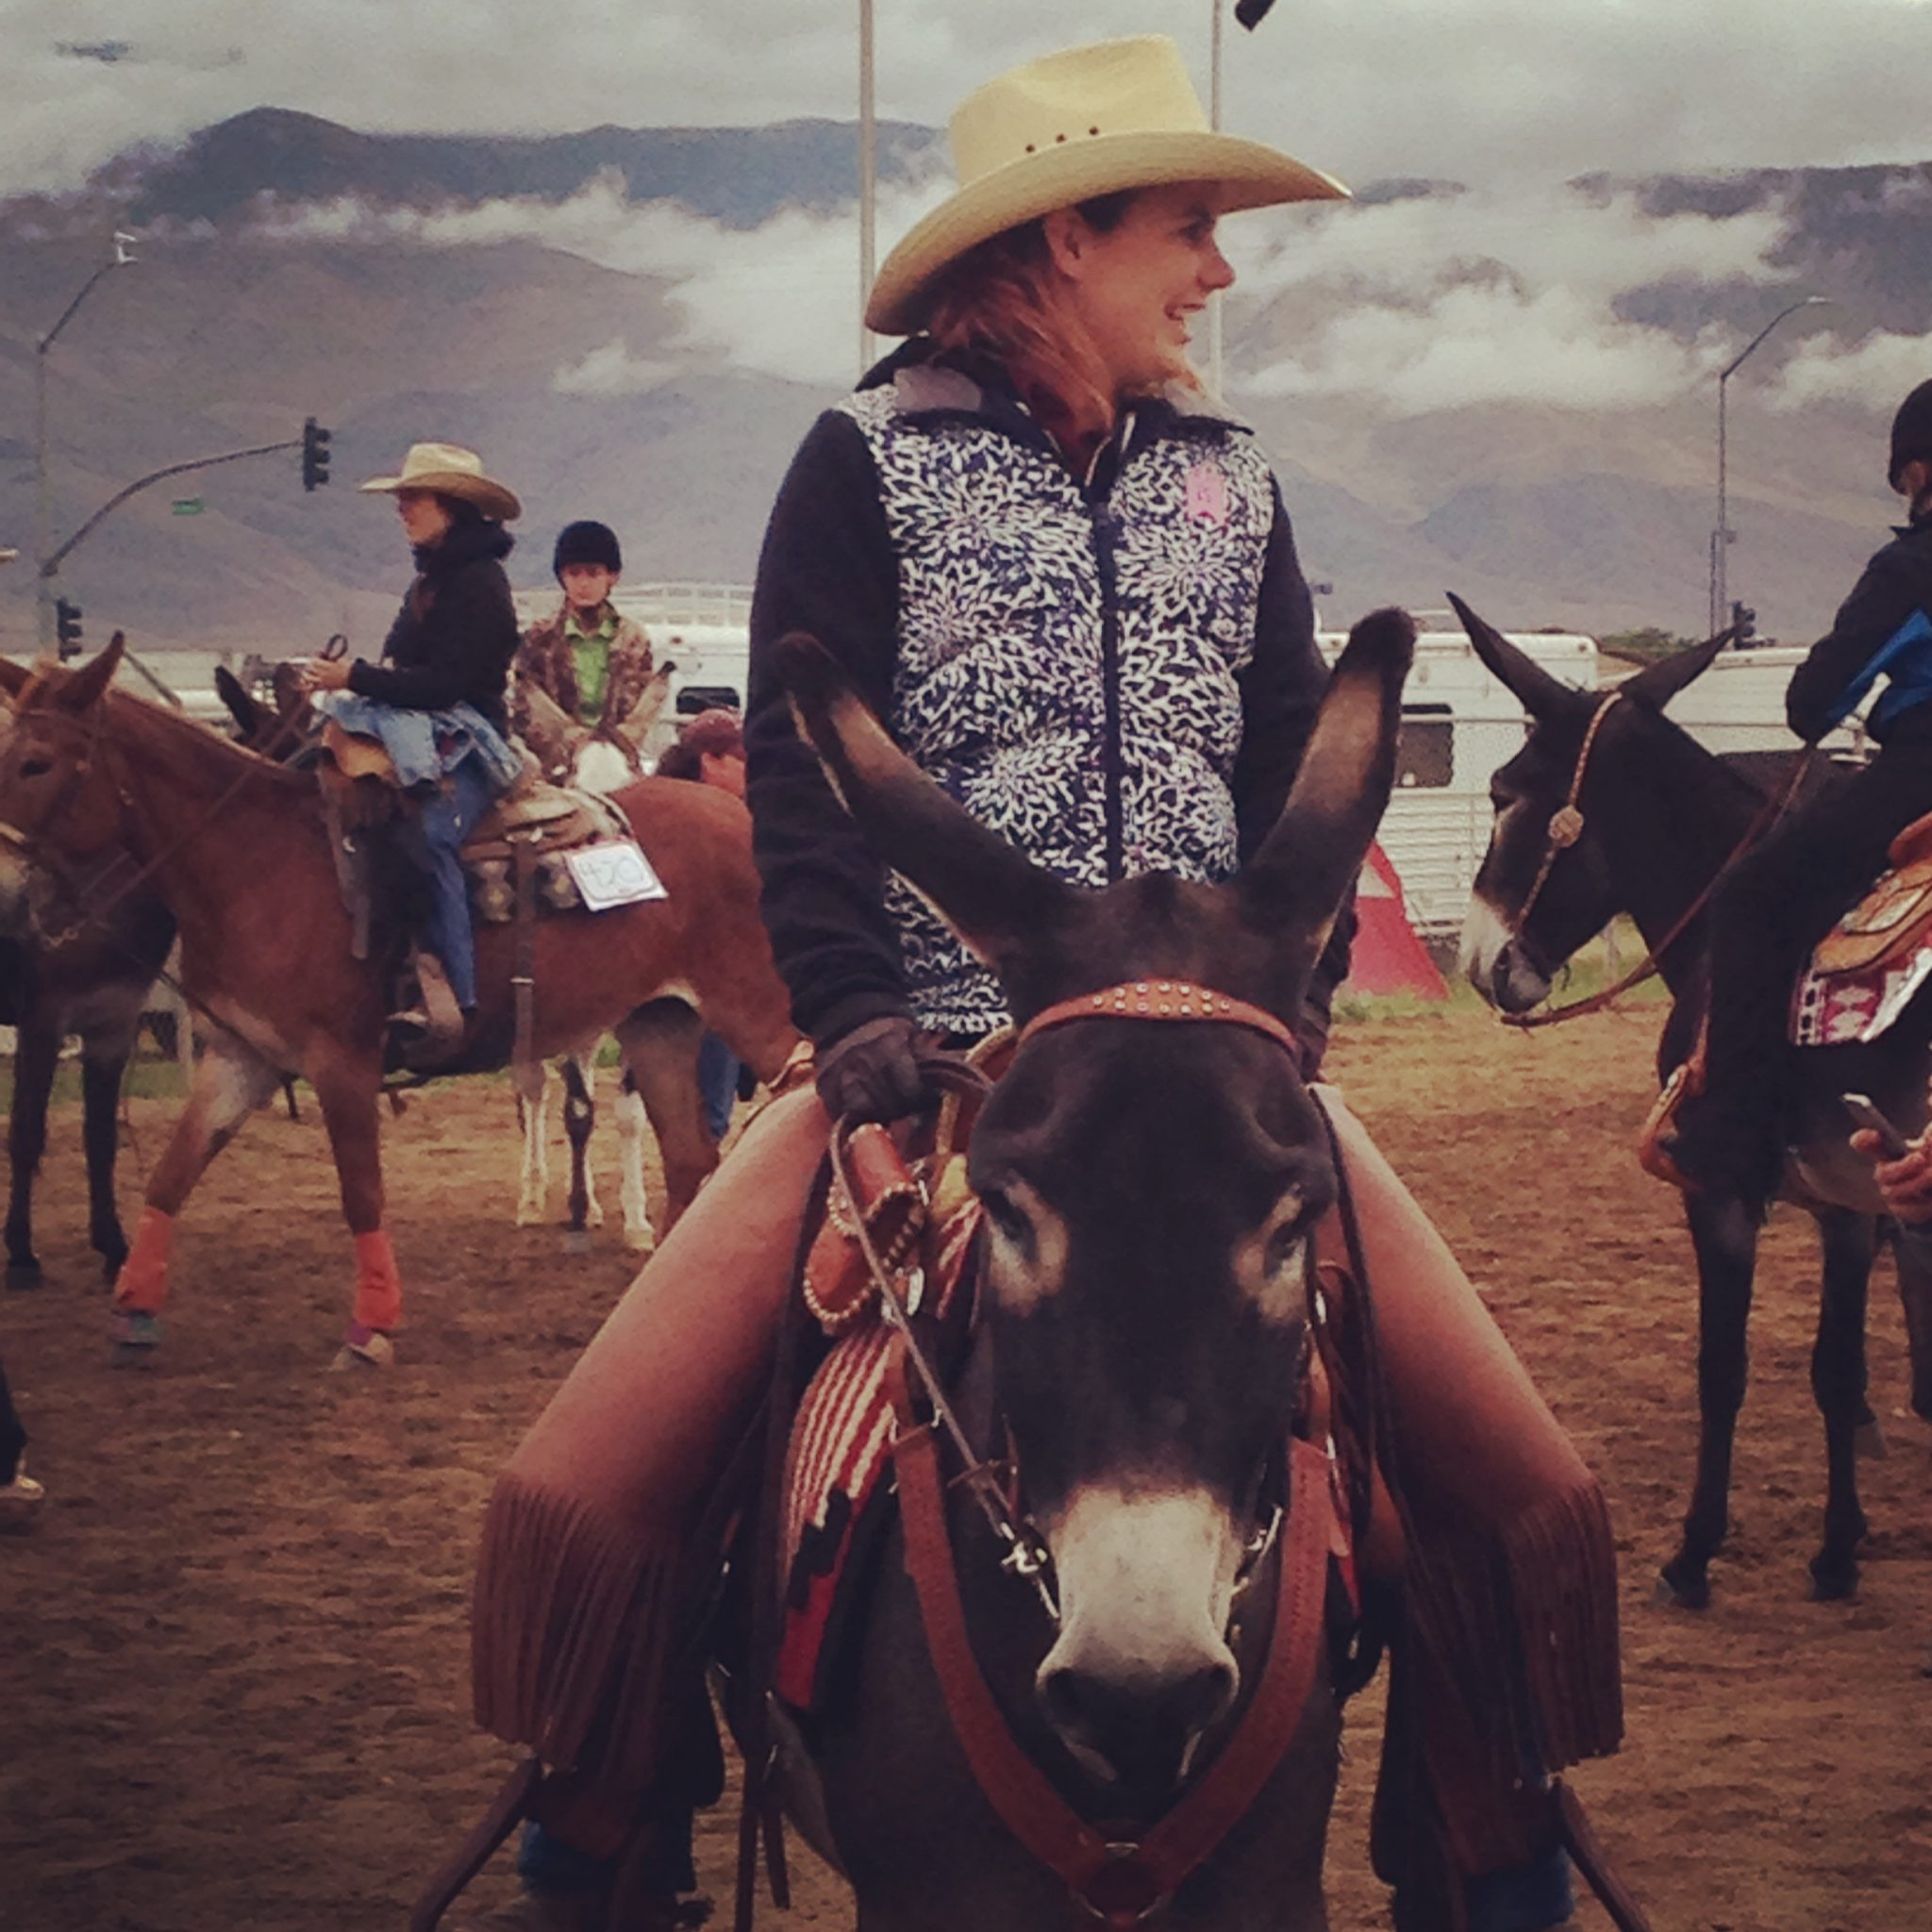 image: competitors on mules